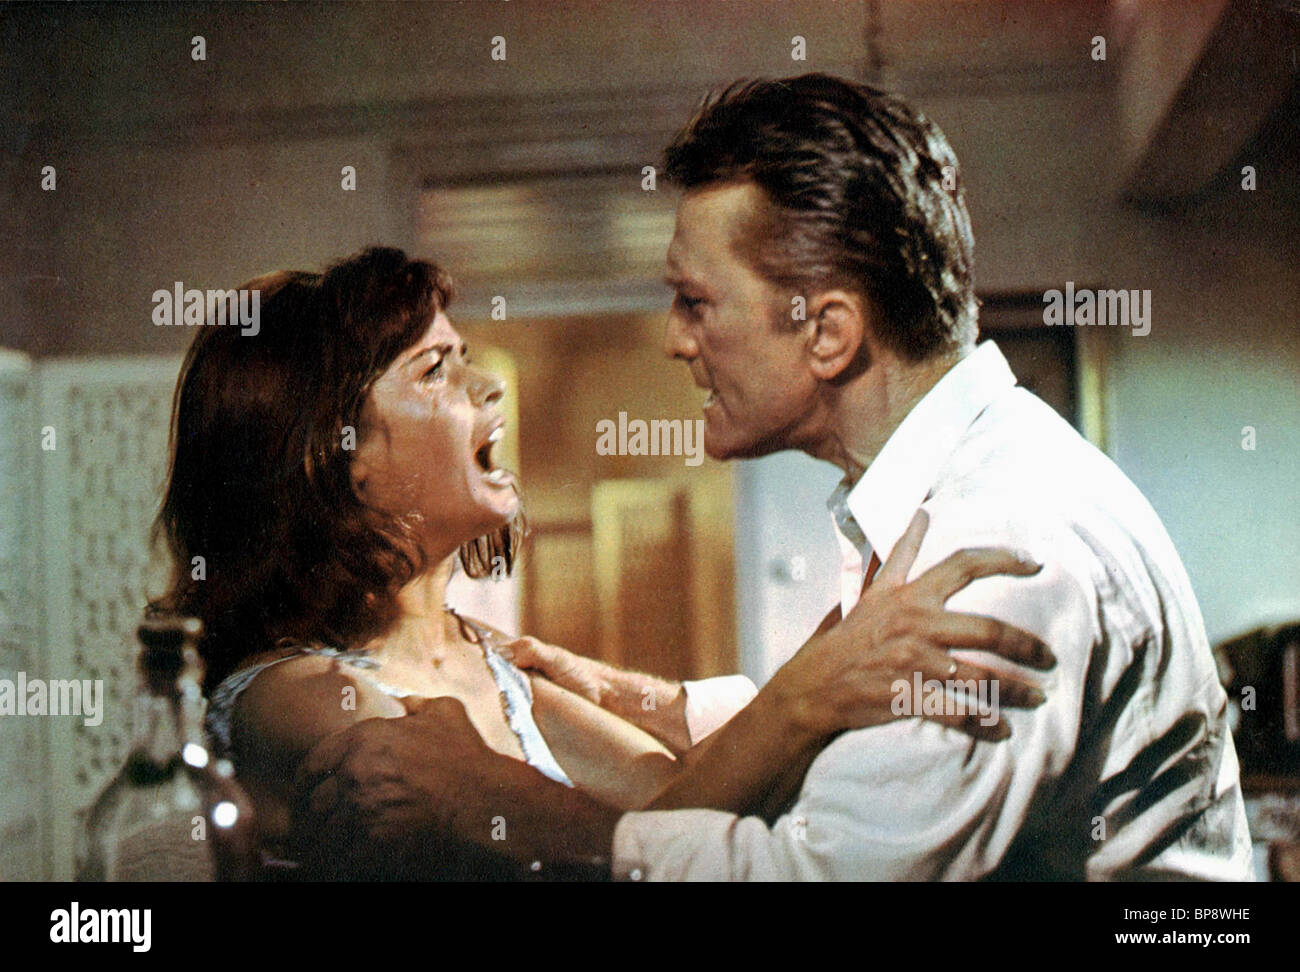 SENTA BERGER & KIRK DOUGLAS CAST A GIANT SHADOW (1966) - Stock Image